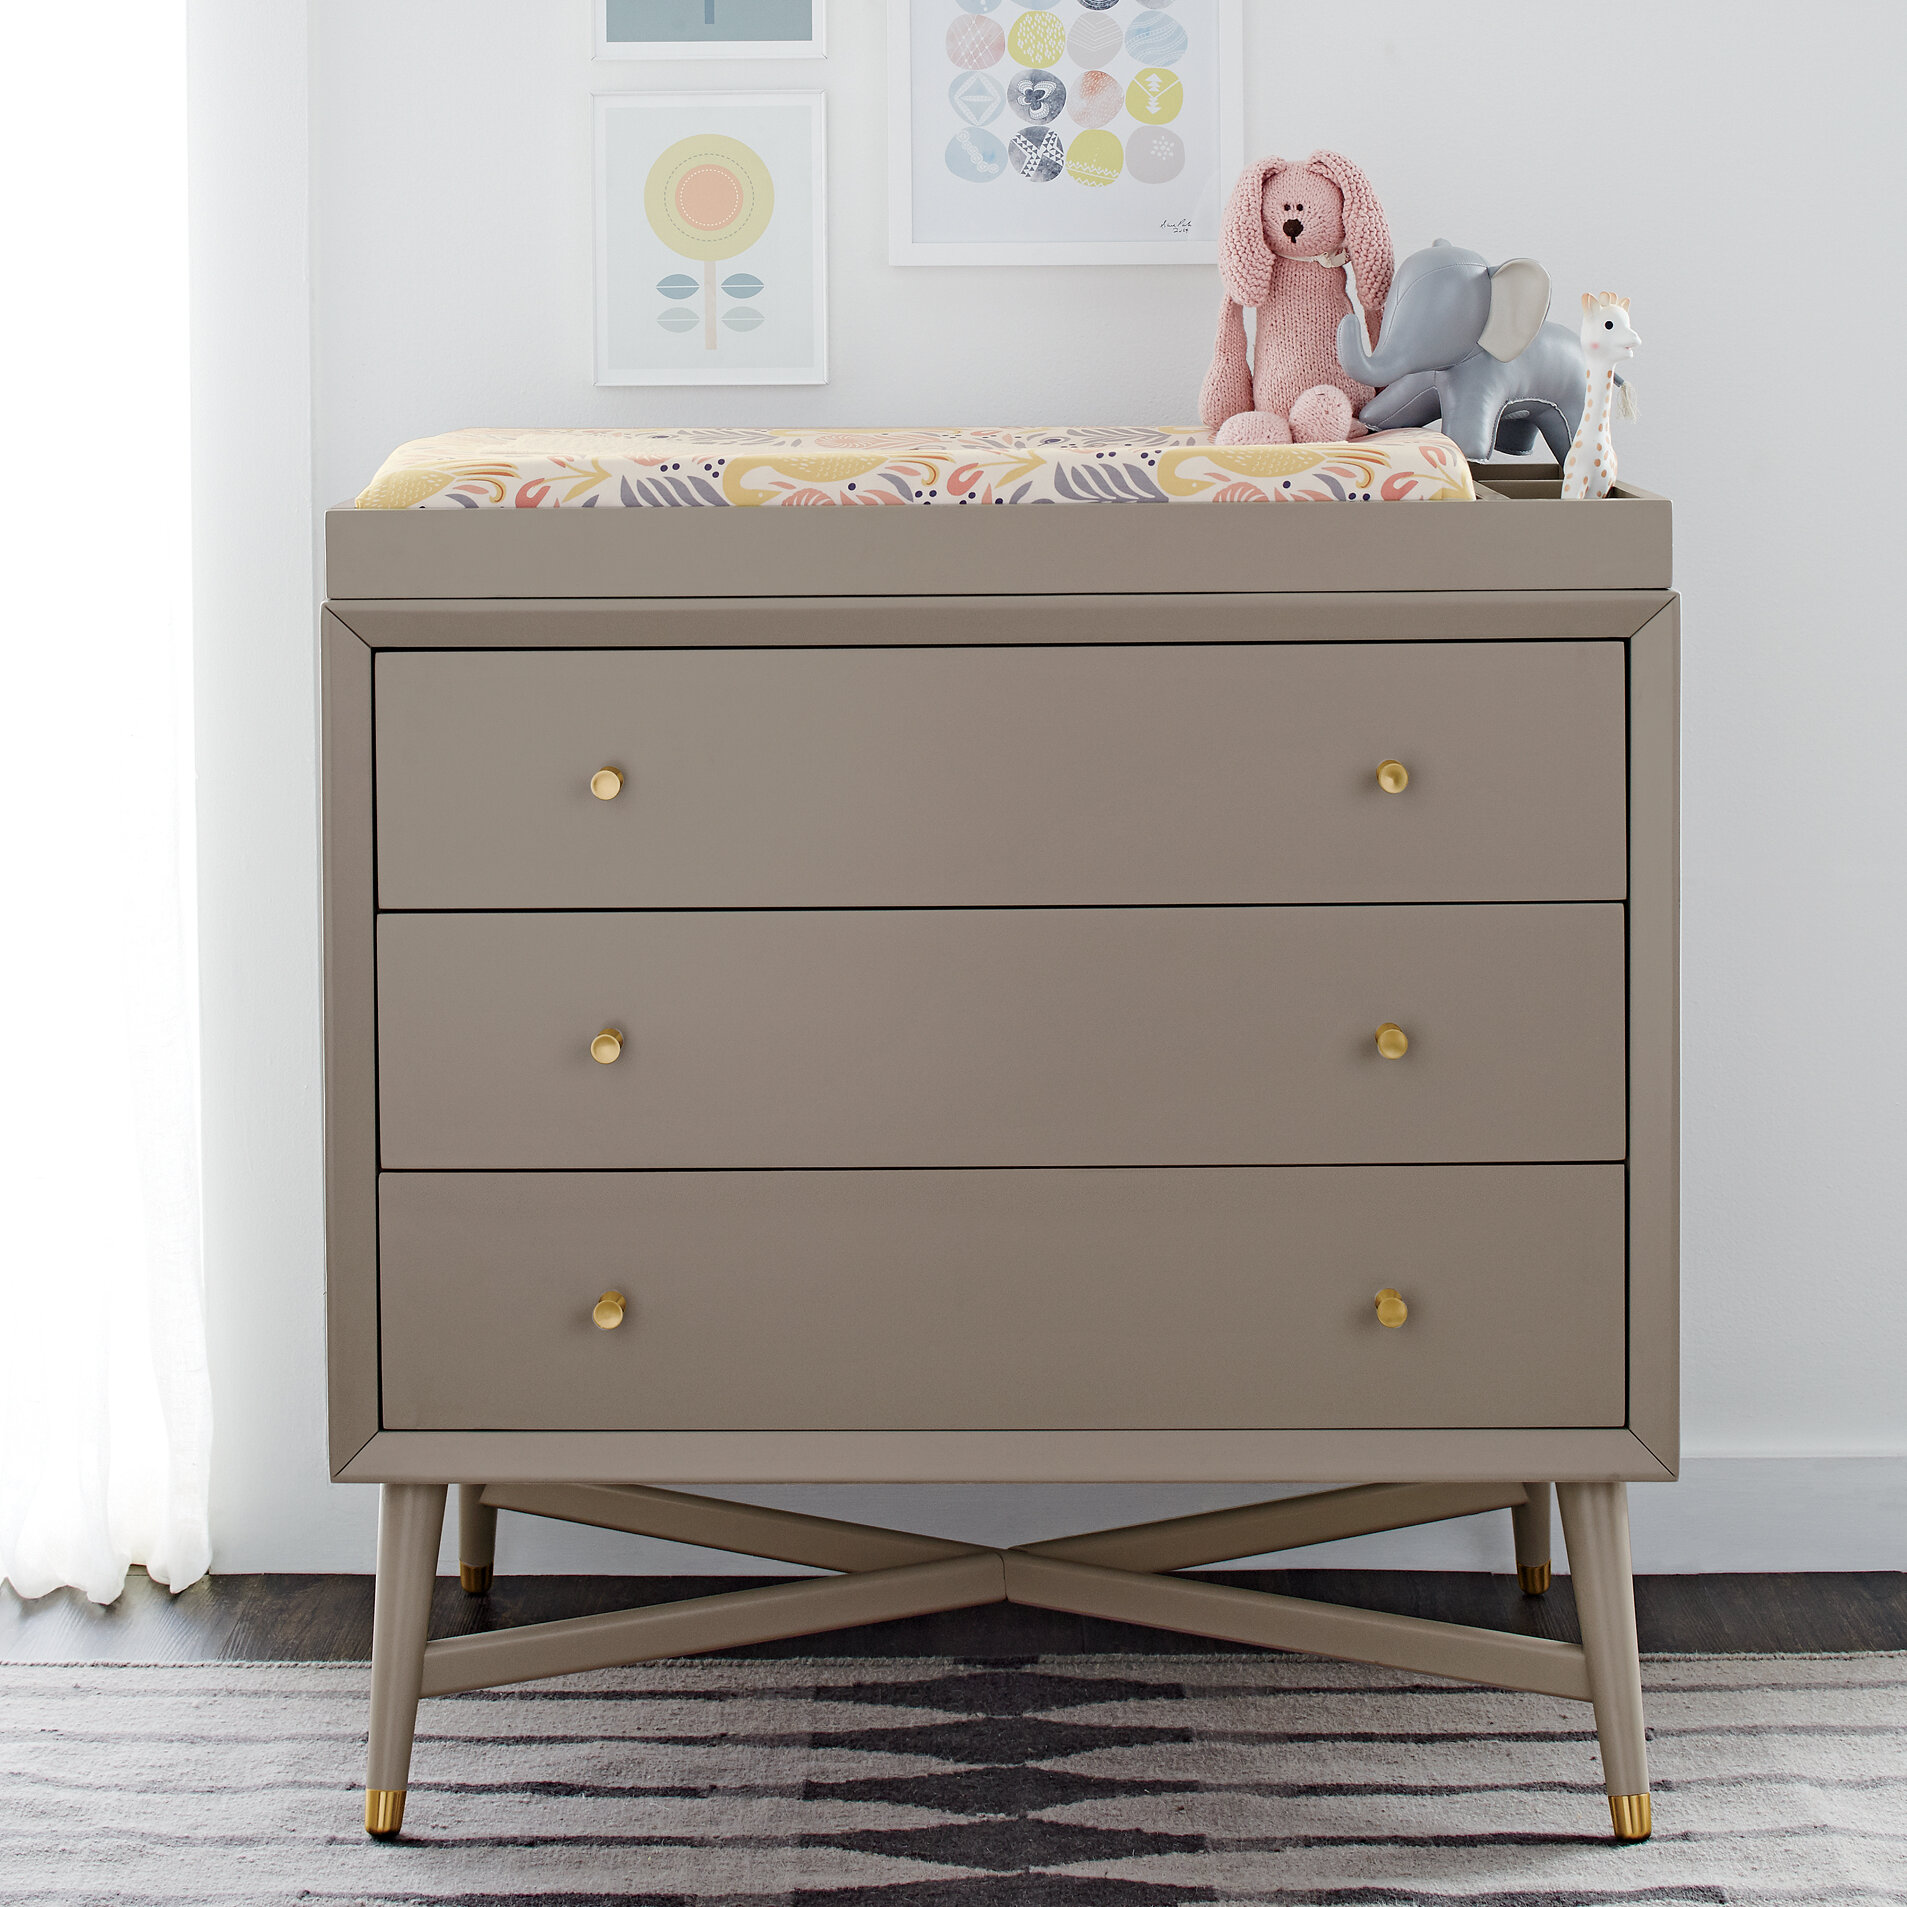 Dwellstudio Mid Century 3 Drawer Changing Dresser In French White